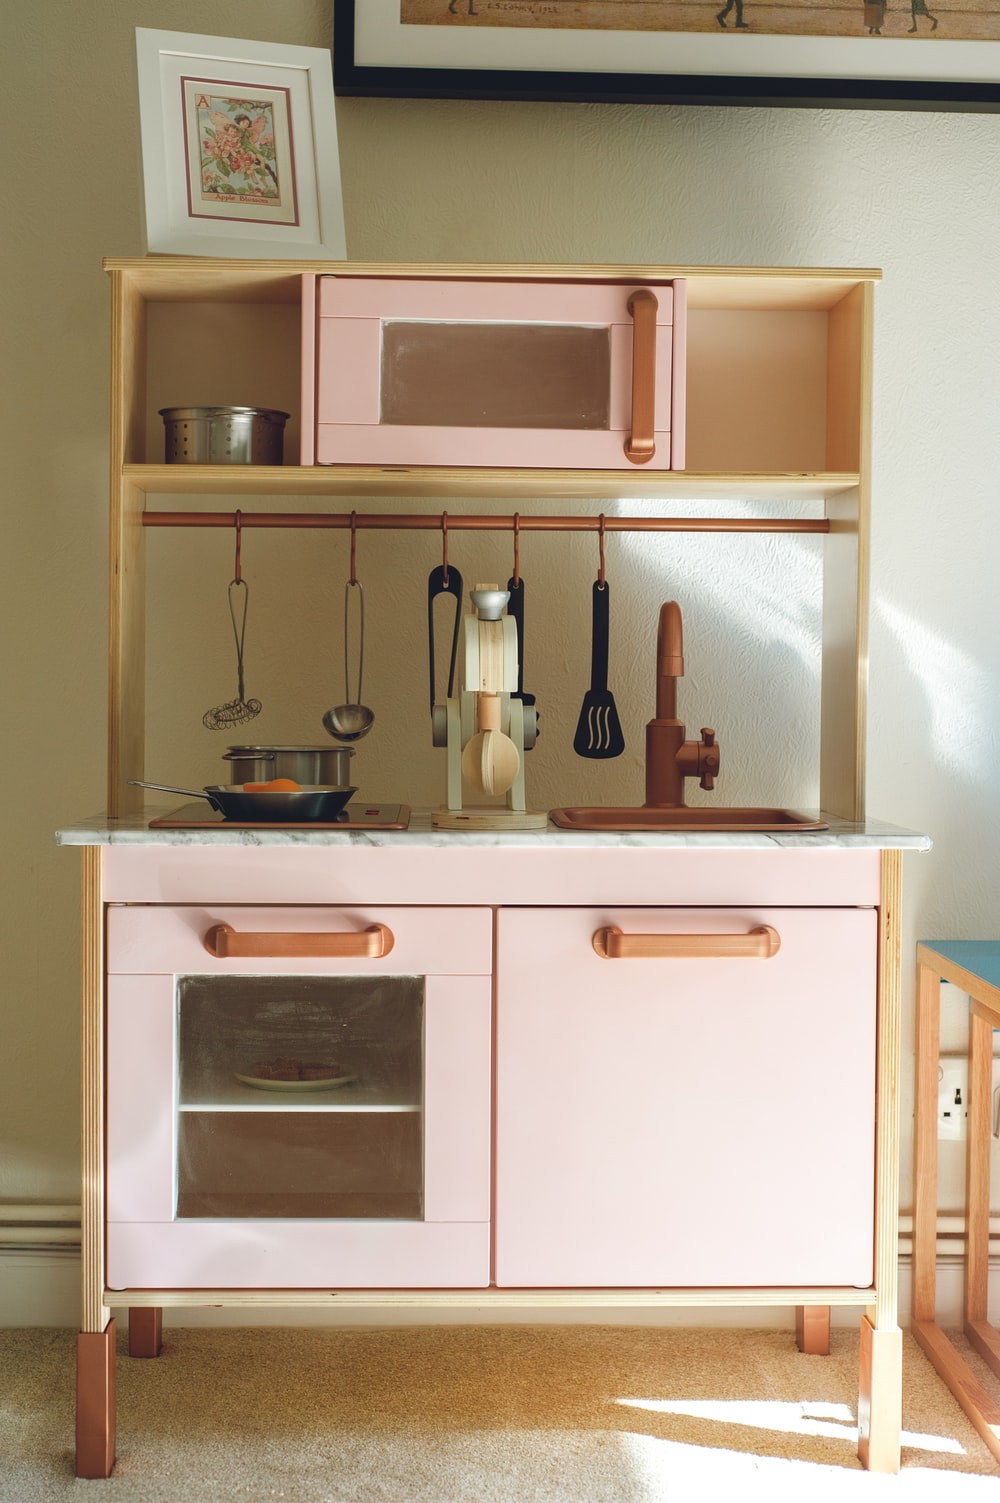 white wooden kitchen cabinet with stainless steel cooking pot